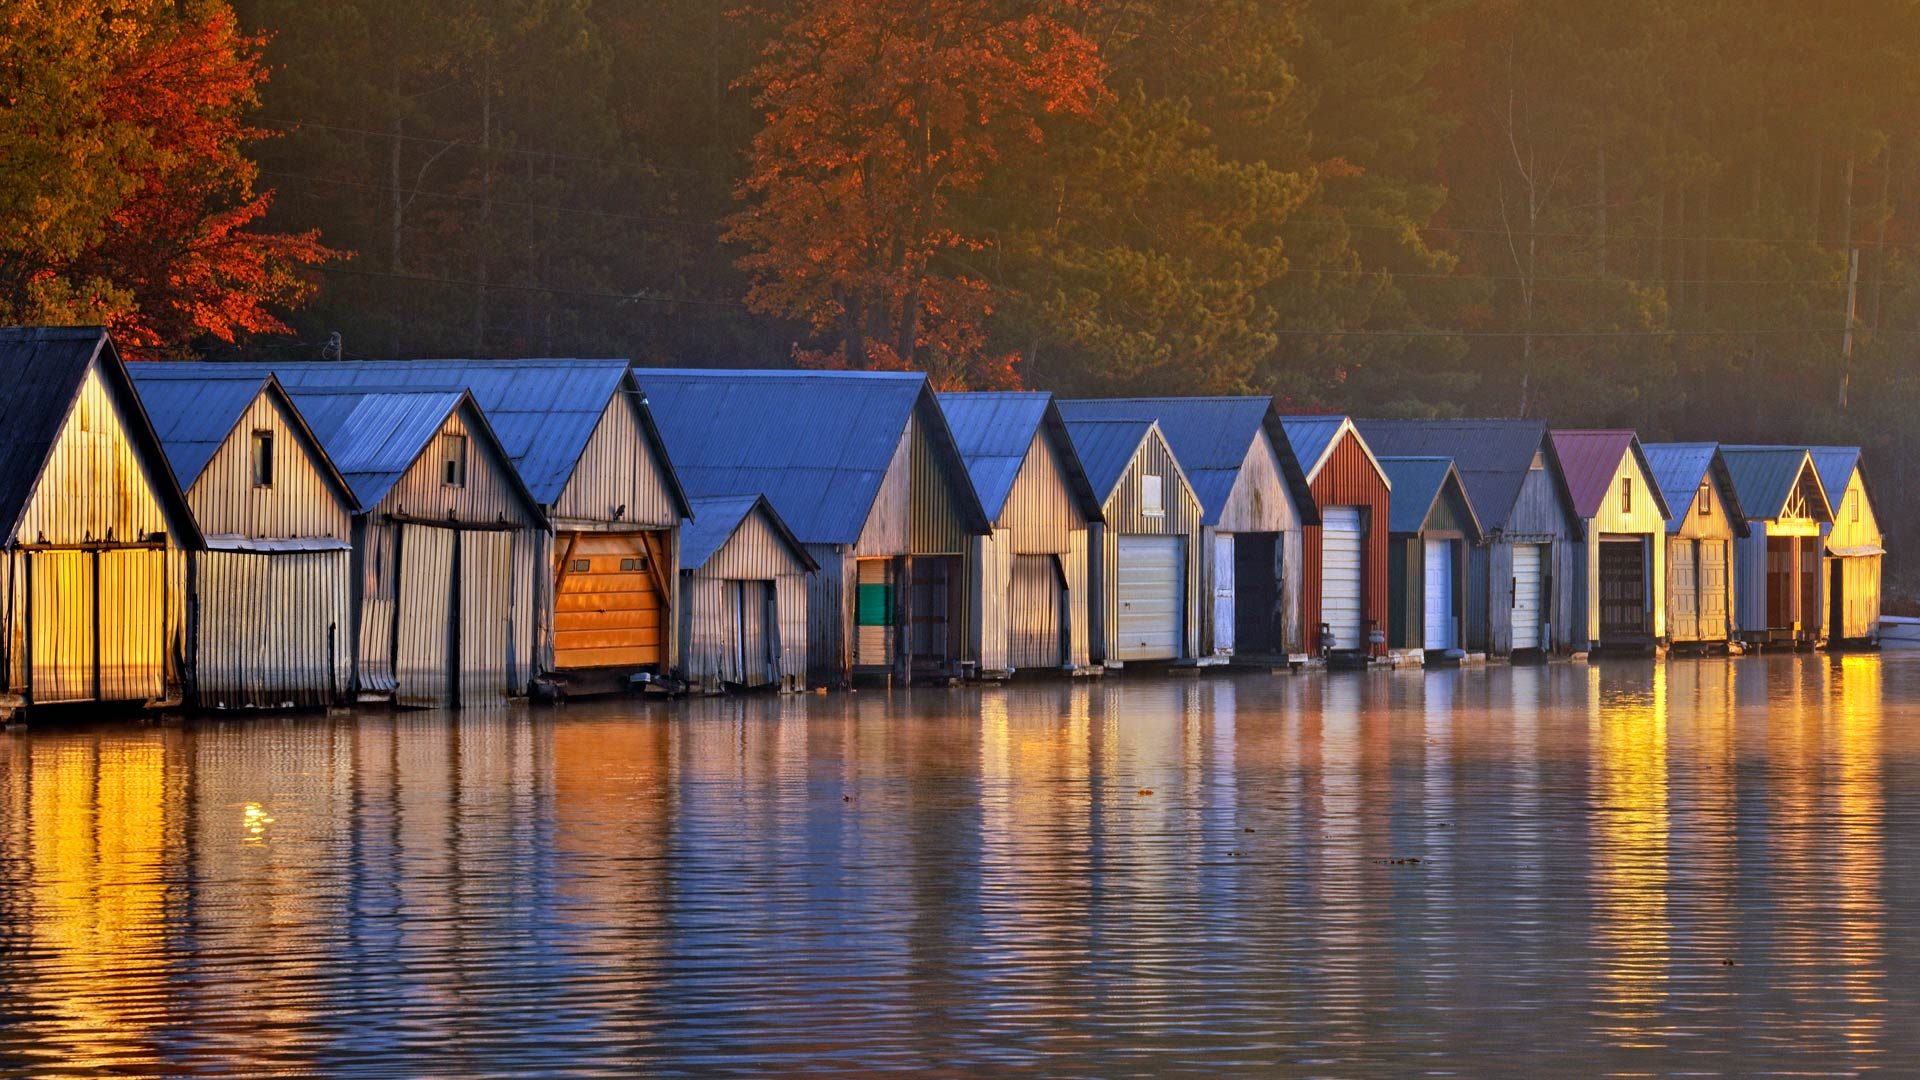 Panache Boathouses